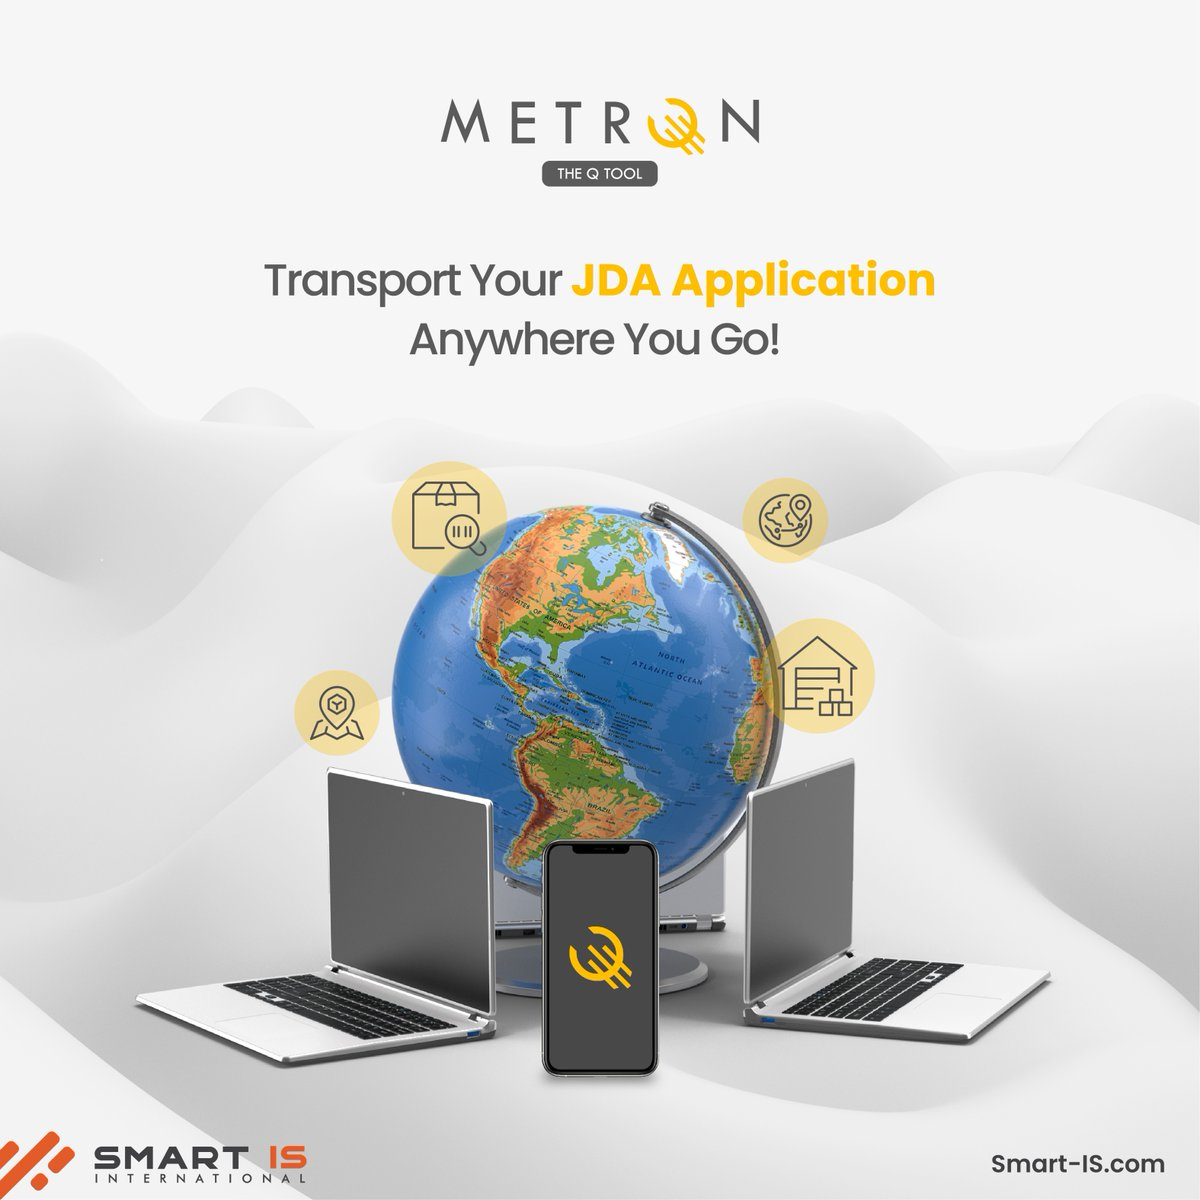 Metron is a Q-tool that allows you to transport your JDA application anywhere you go.    #MetronTheQTool #WMS #Business #B2B #BlueYonder #JDA #WarehouseManagement #SupplyChain #AppDev https://t.co/QcmKjyUcER